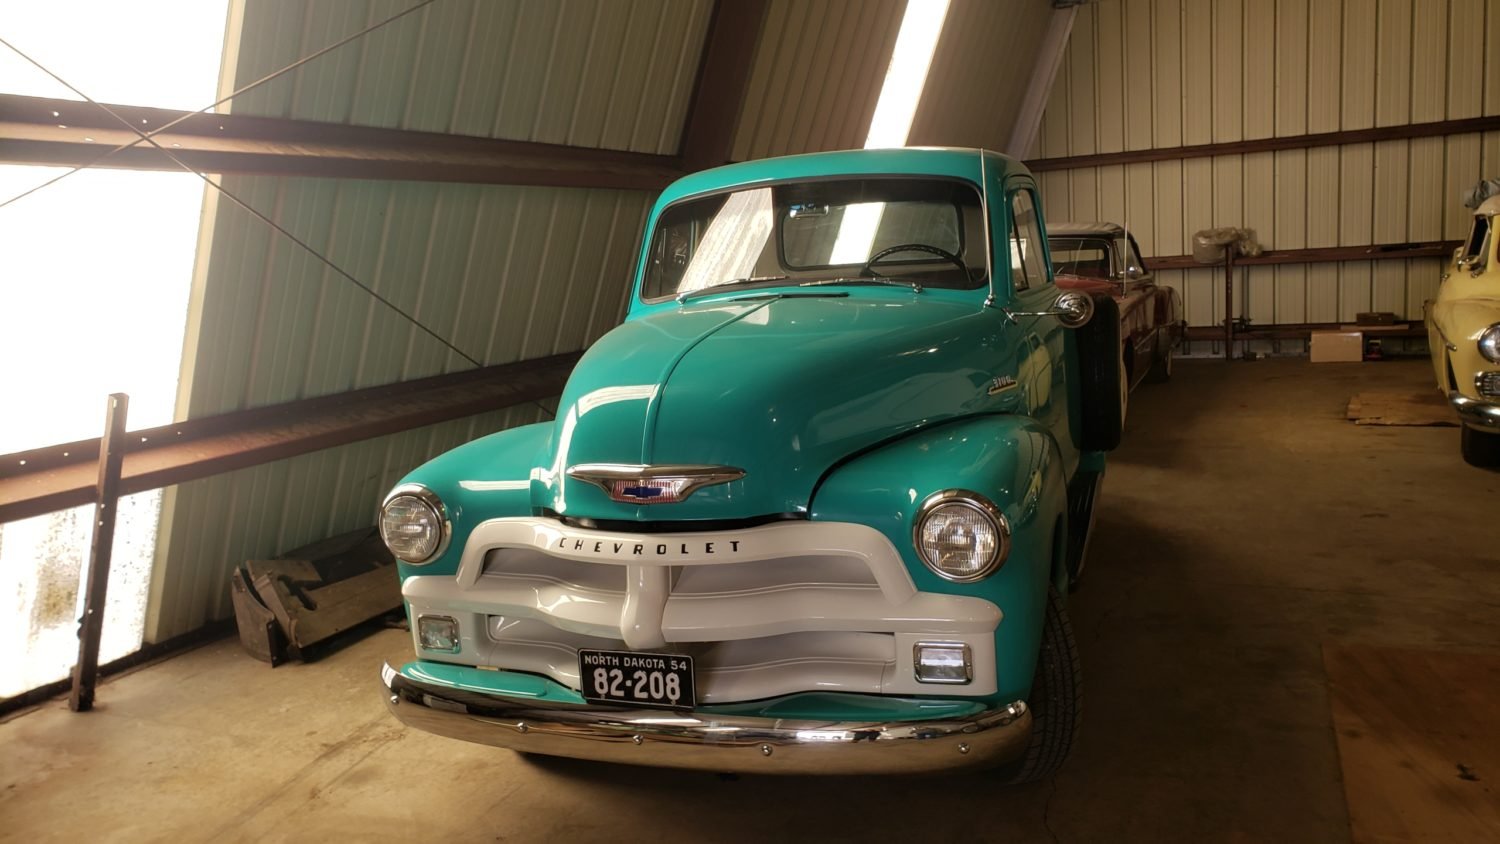 Fabulous Collector Cars, Antique Tractors, Memorabilia & More! The Krinke Collection - image 5